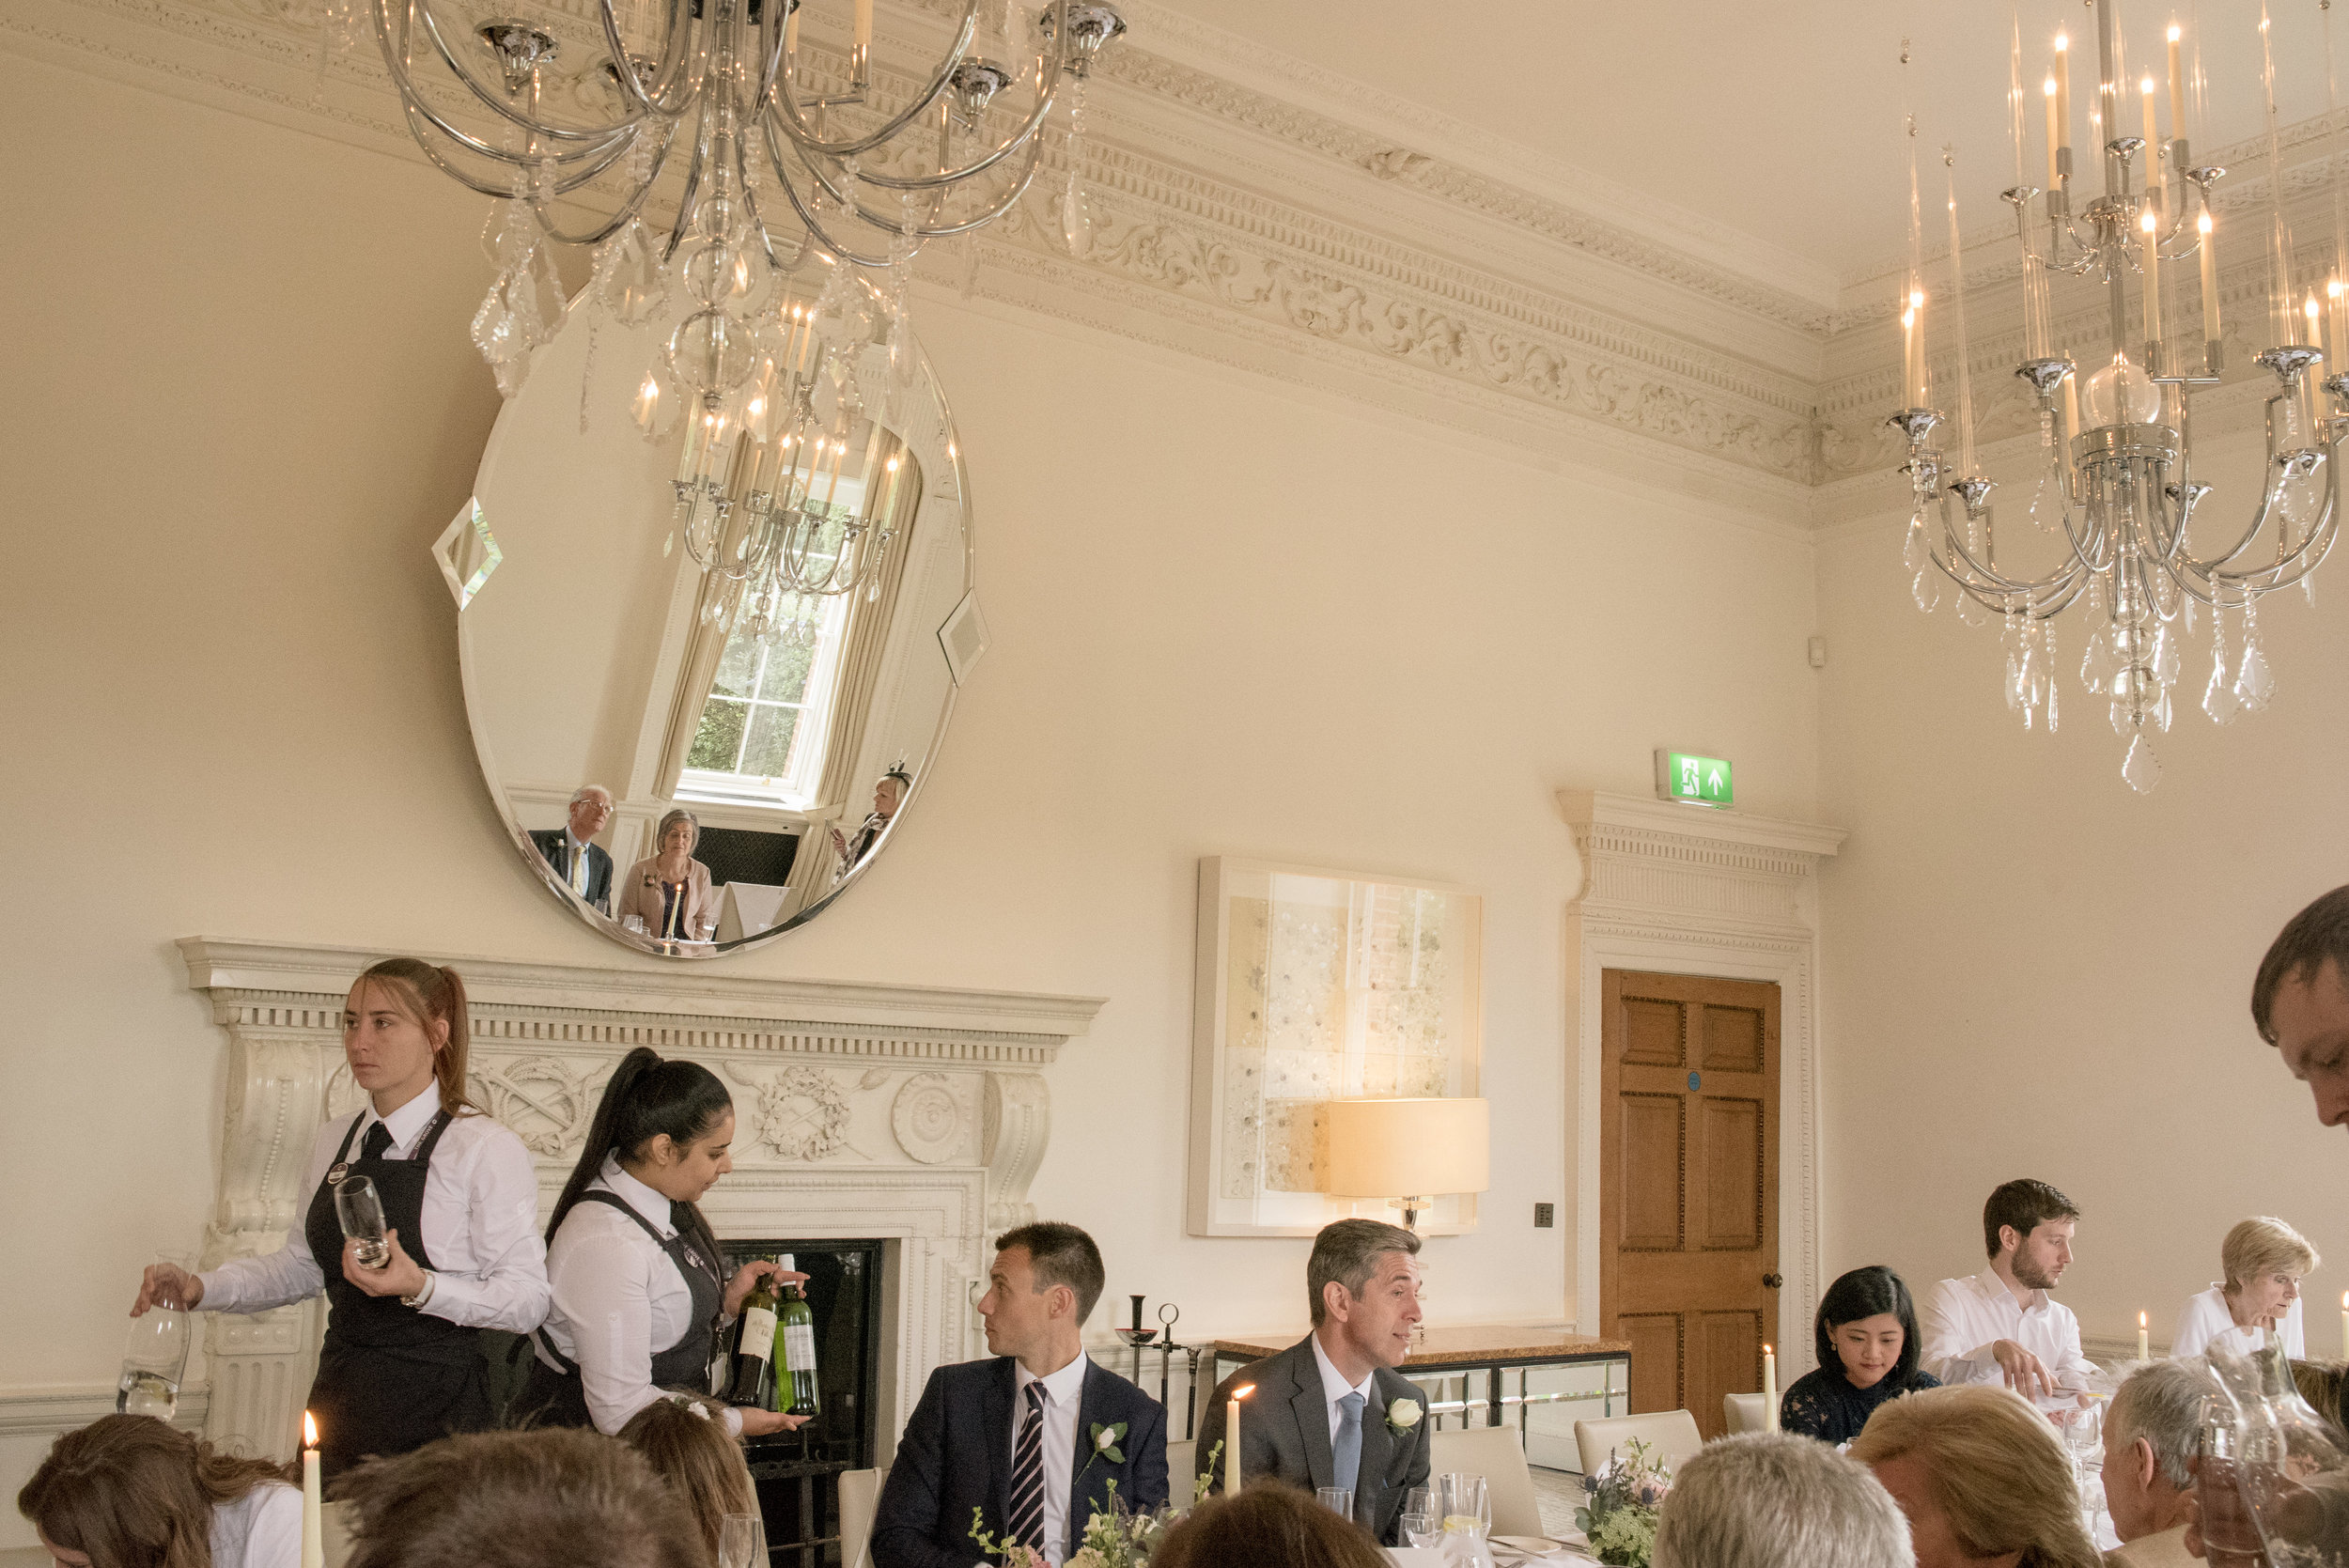 Wedding guests at The Grove Hotel